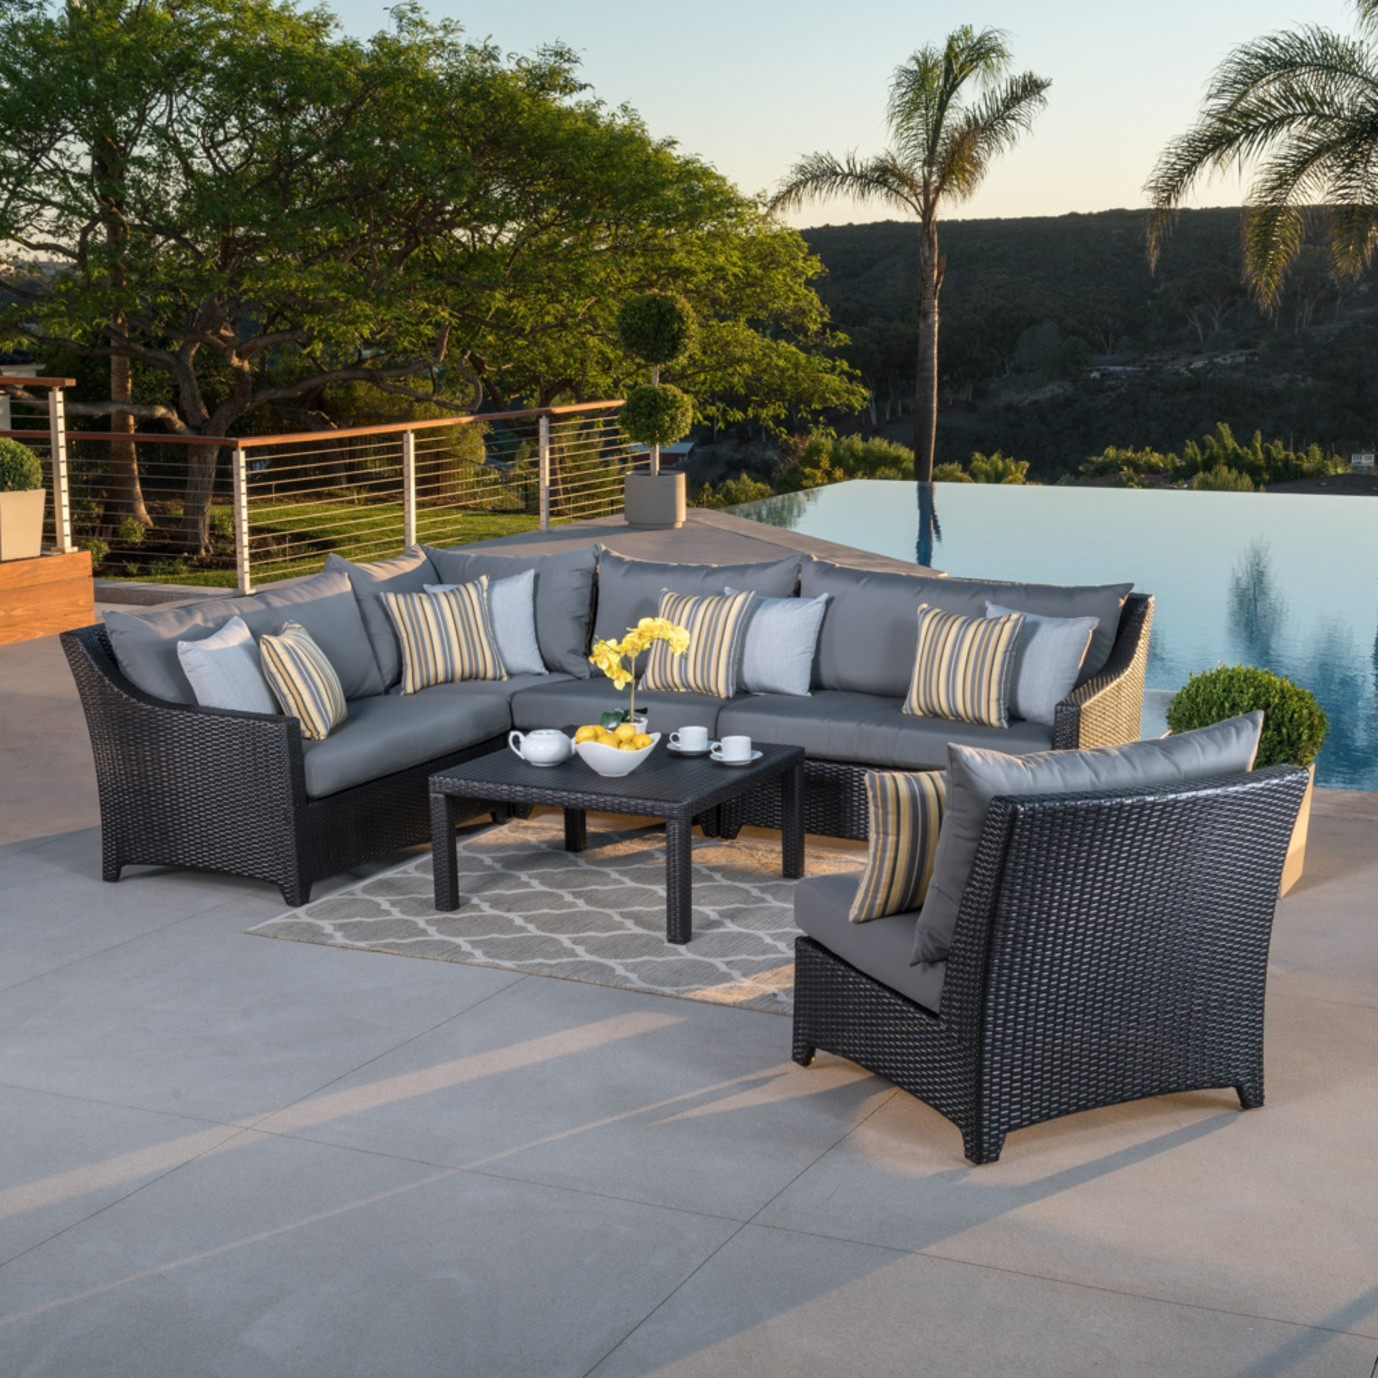 Deco™ 6pc Sectional and Table - Charcoal Grey